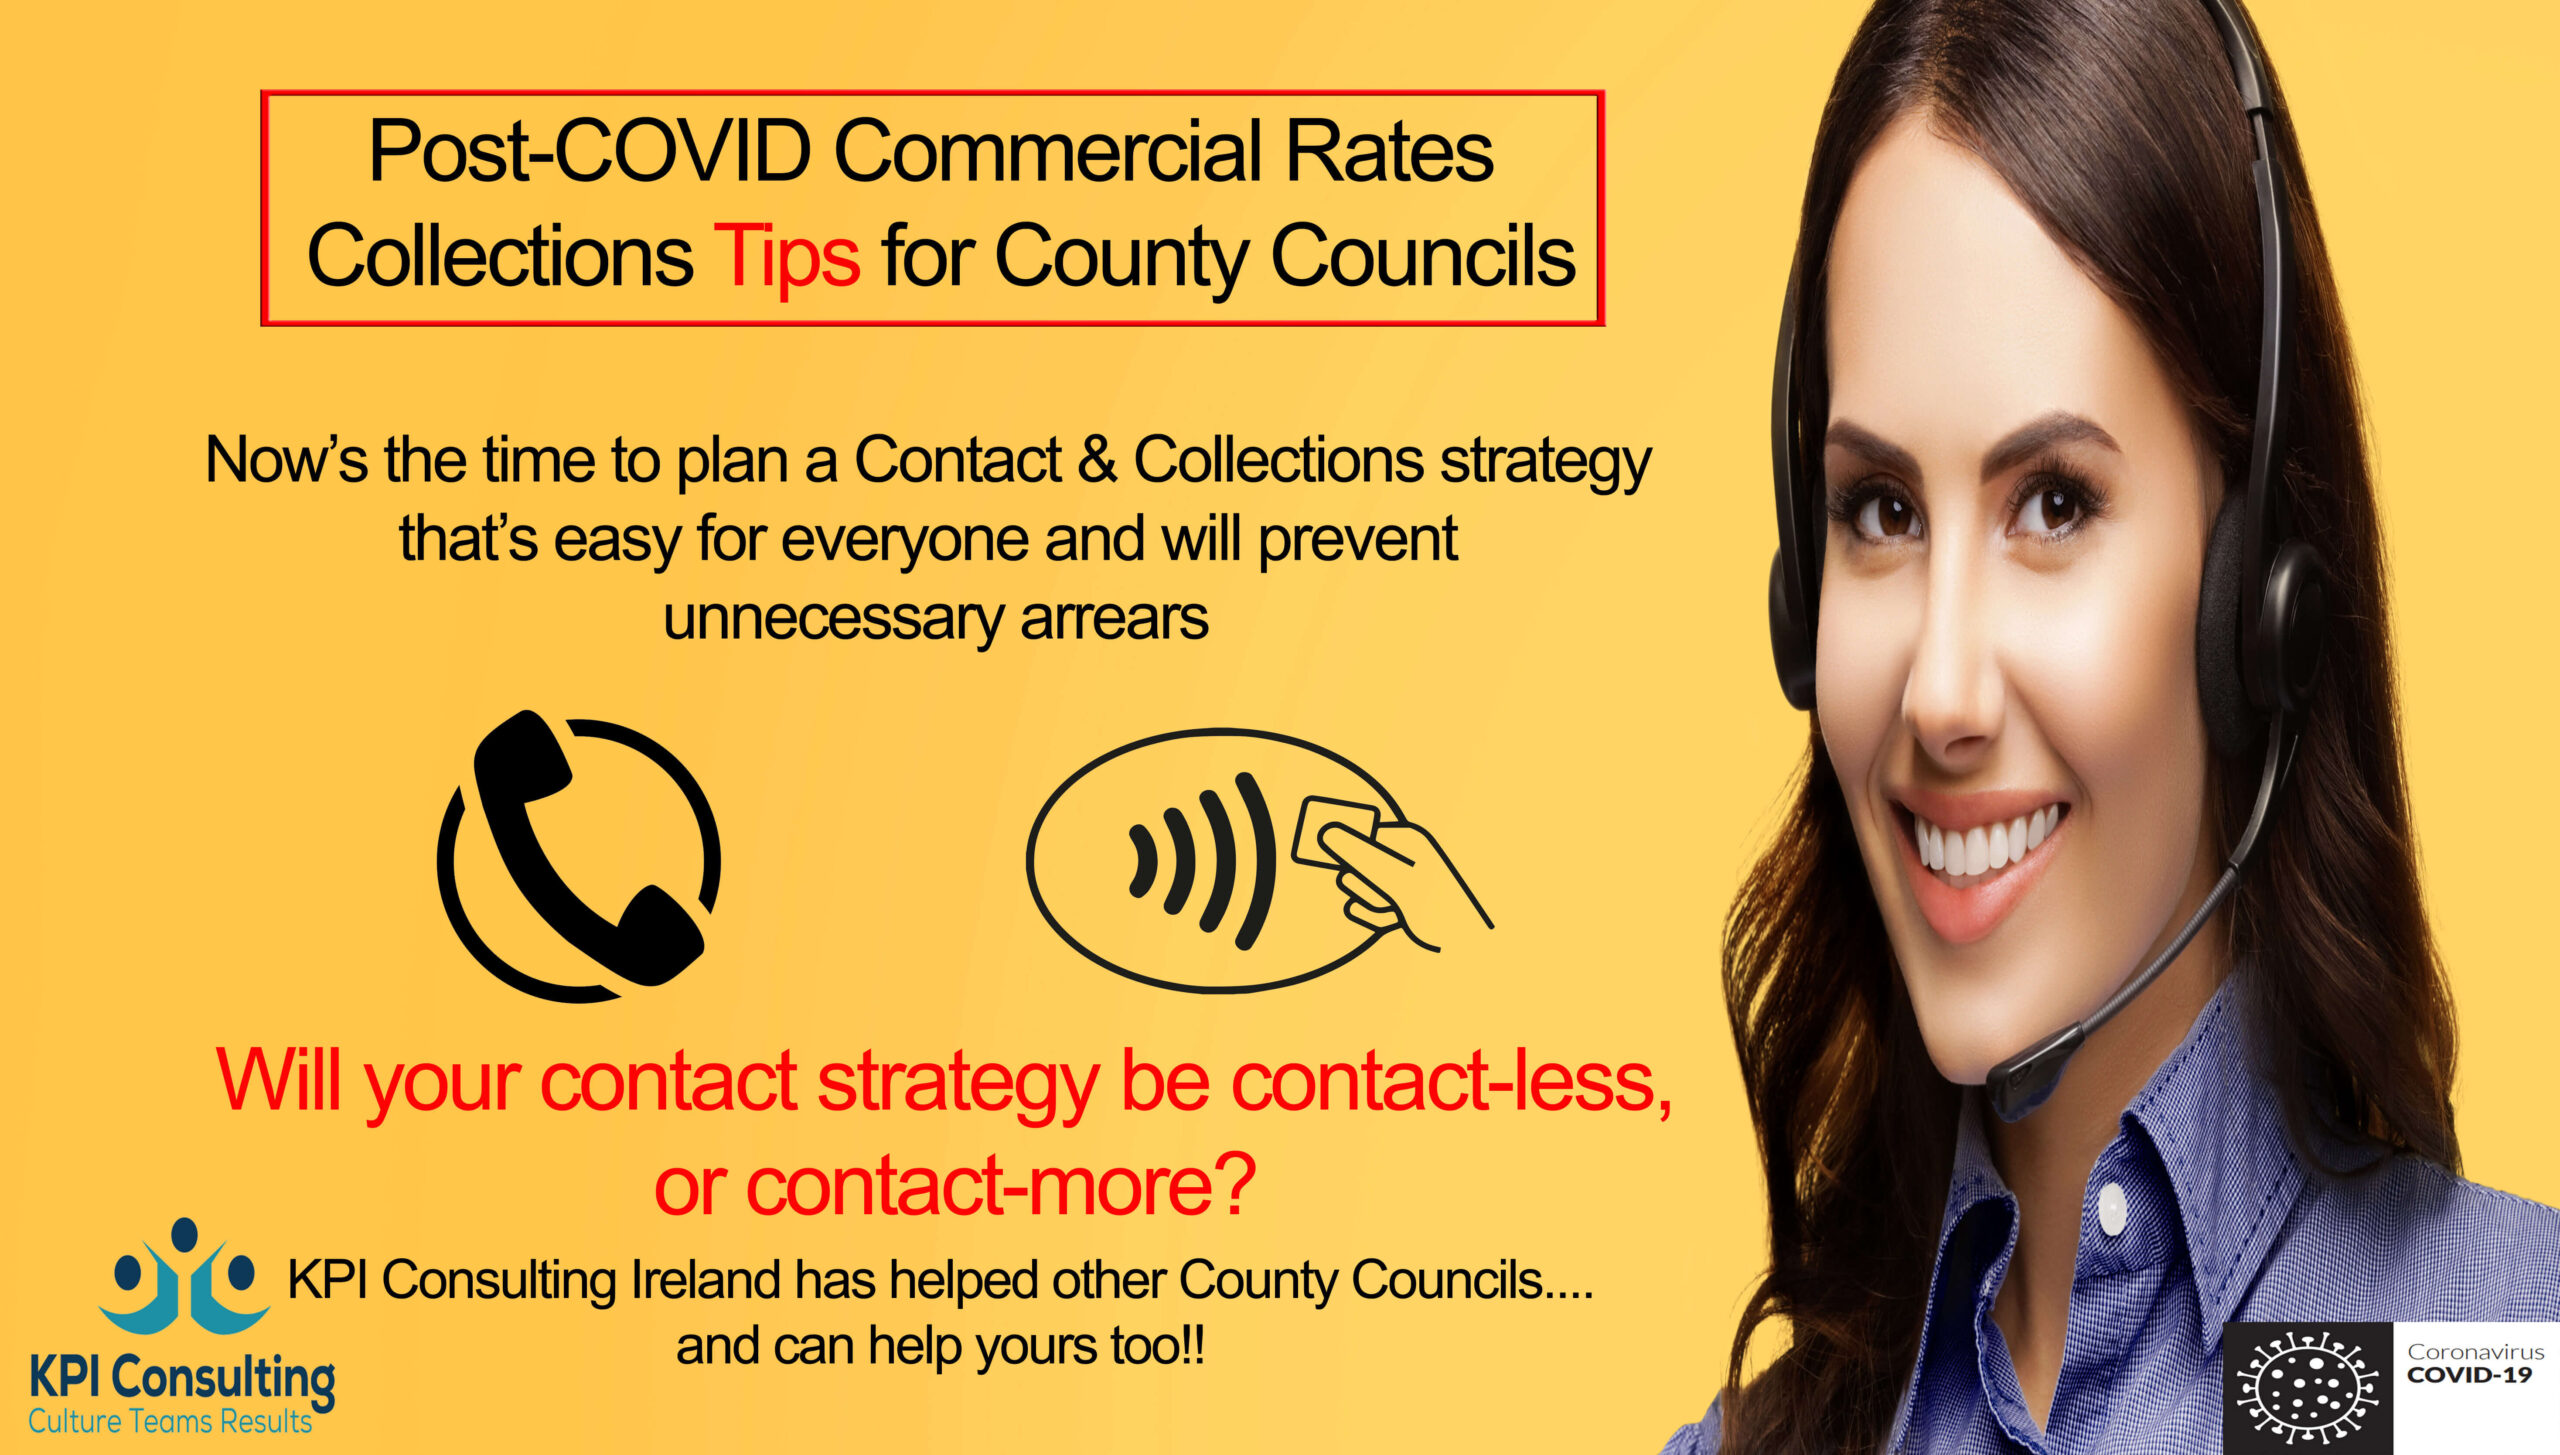 Collections Tips with KPI Consulting